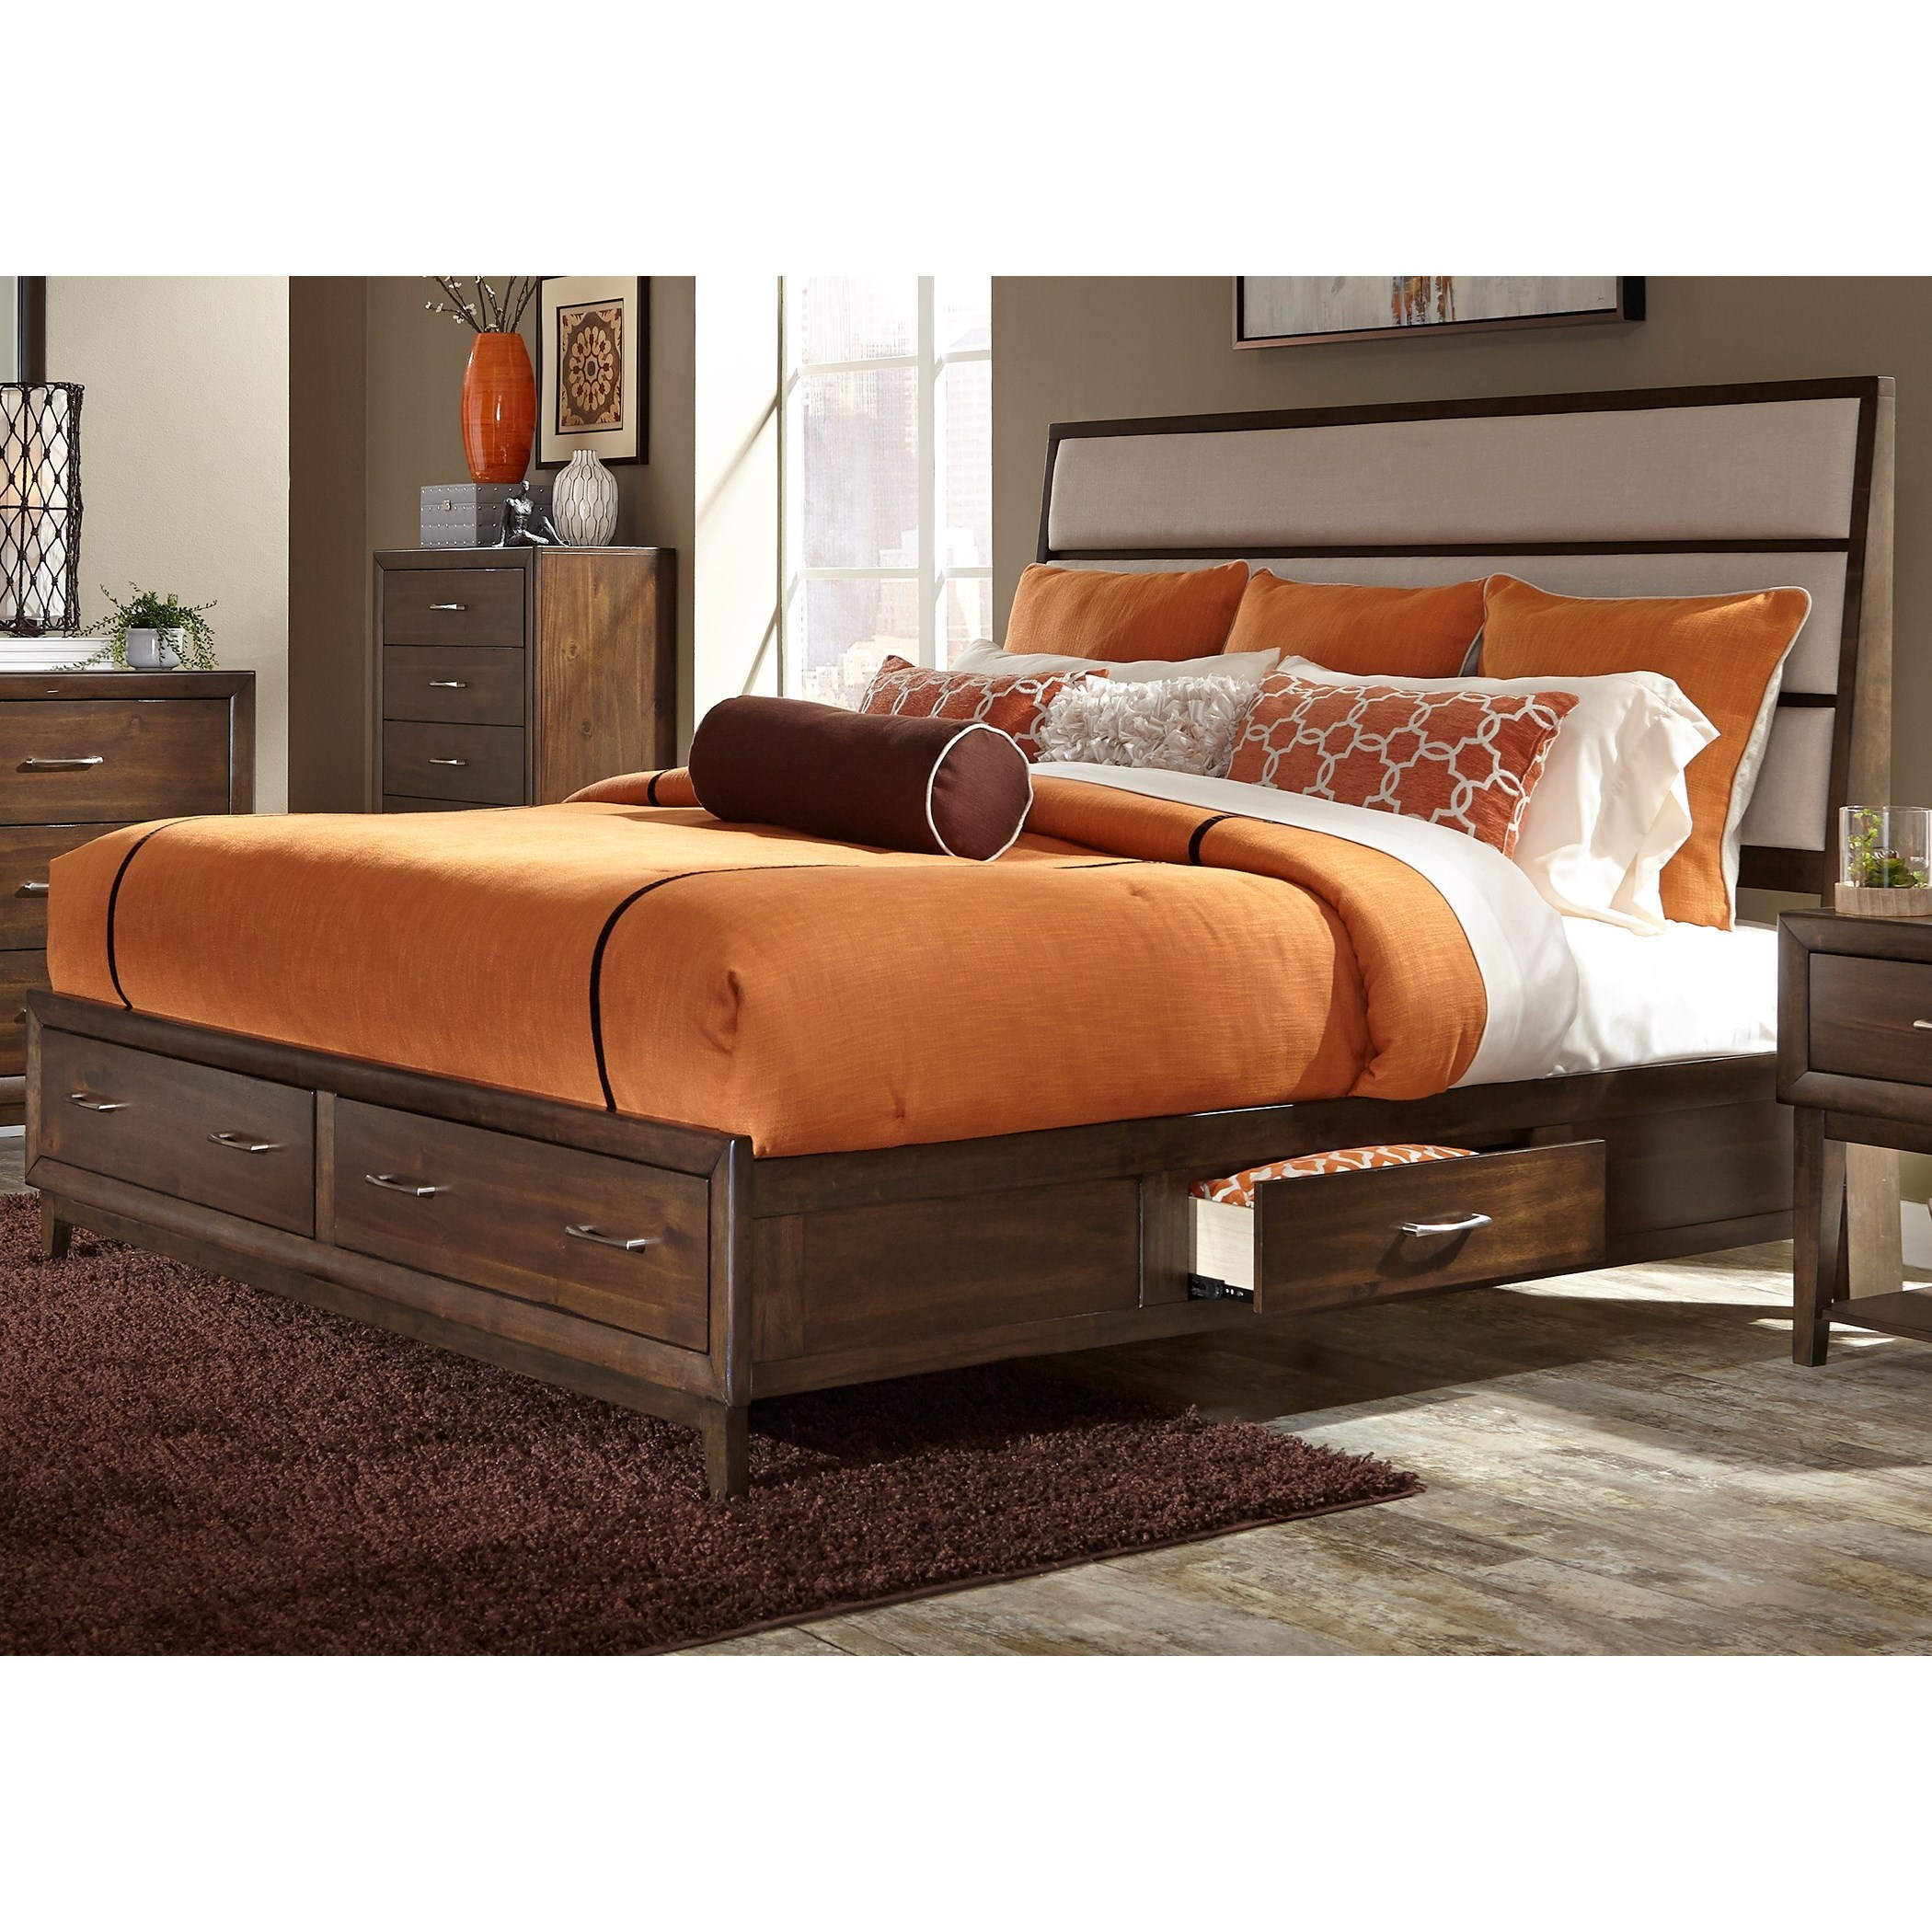 Liberty Furniture Hudson Square Bedroom King Two Sided Storage Bed  - Item Number: 365-BR-K2S